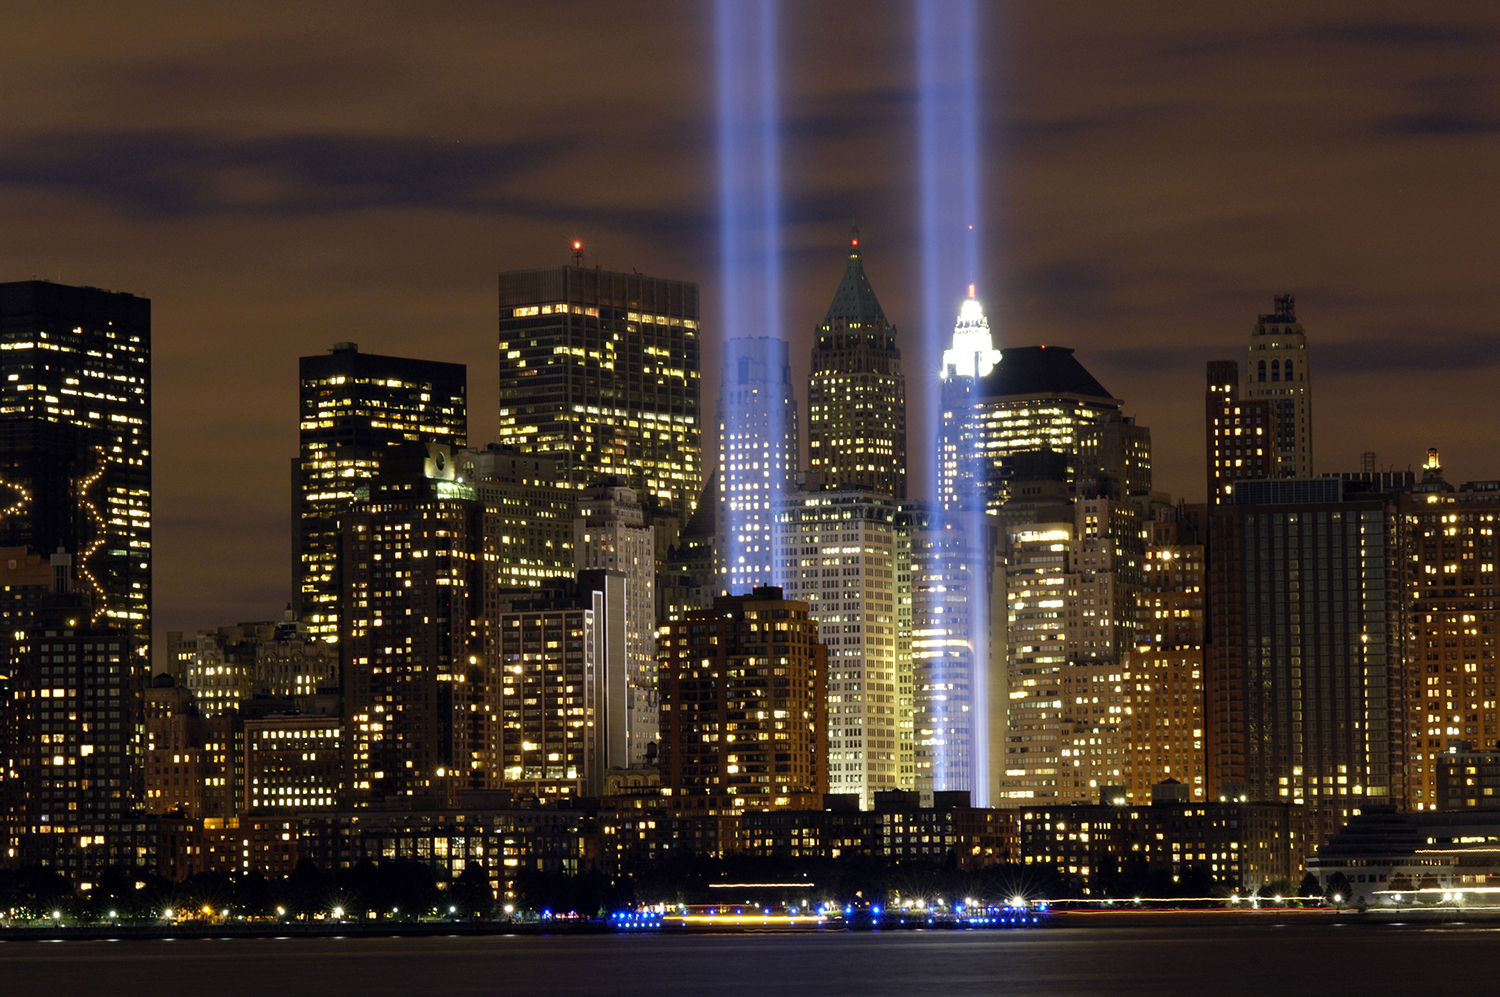 The memorial of the twin towers was completed on Sept. 11, 2011 in remembrance of 9/11 that occurred just 10 years before.